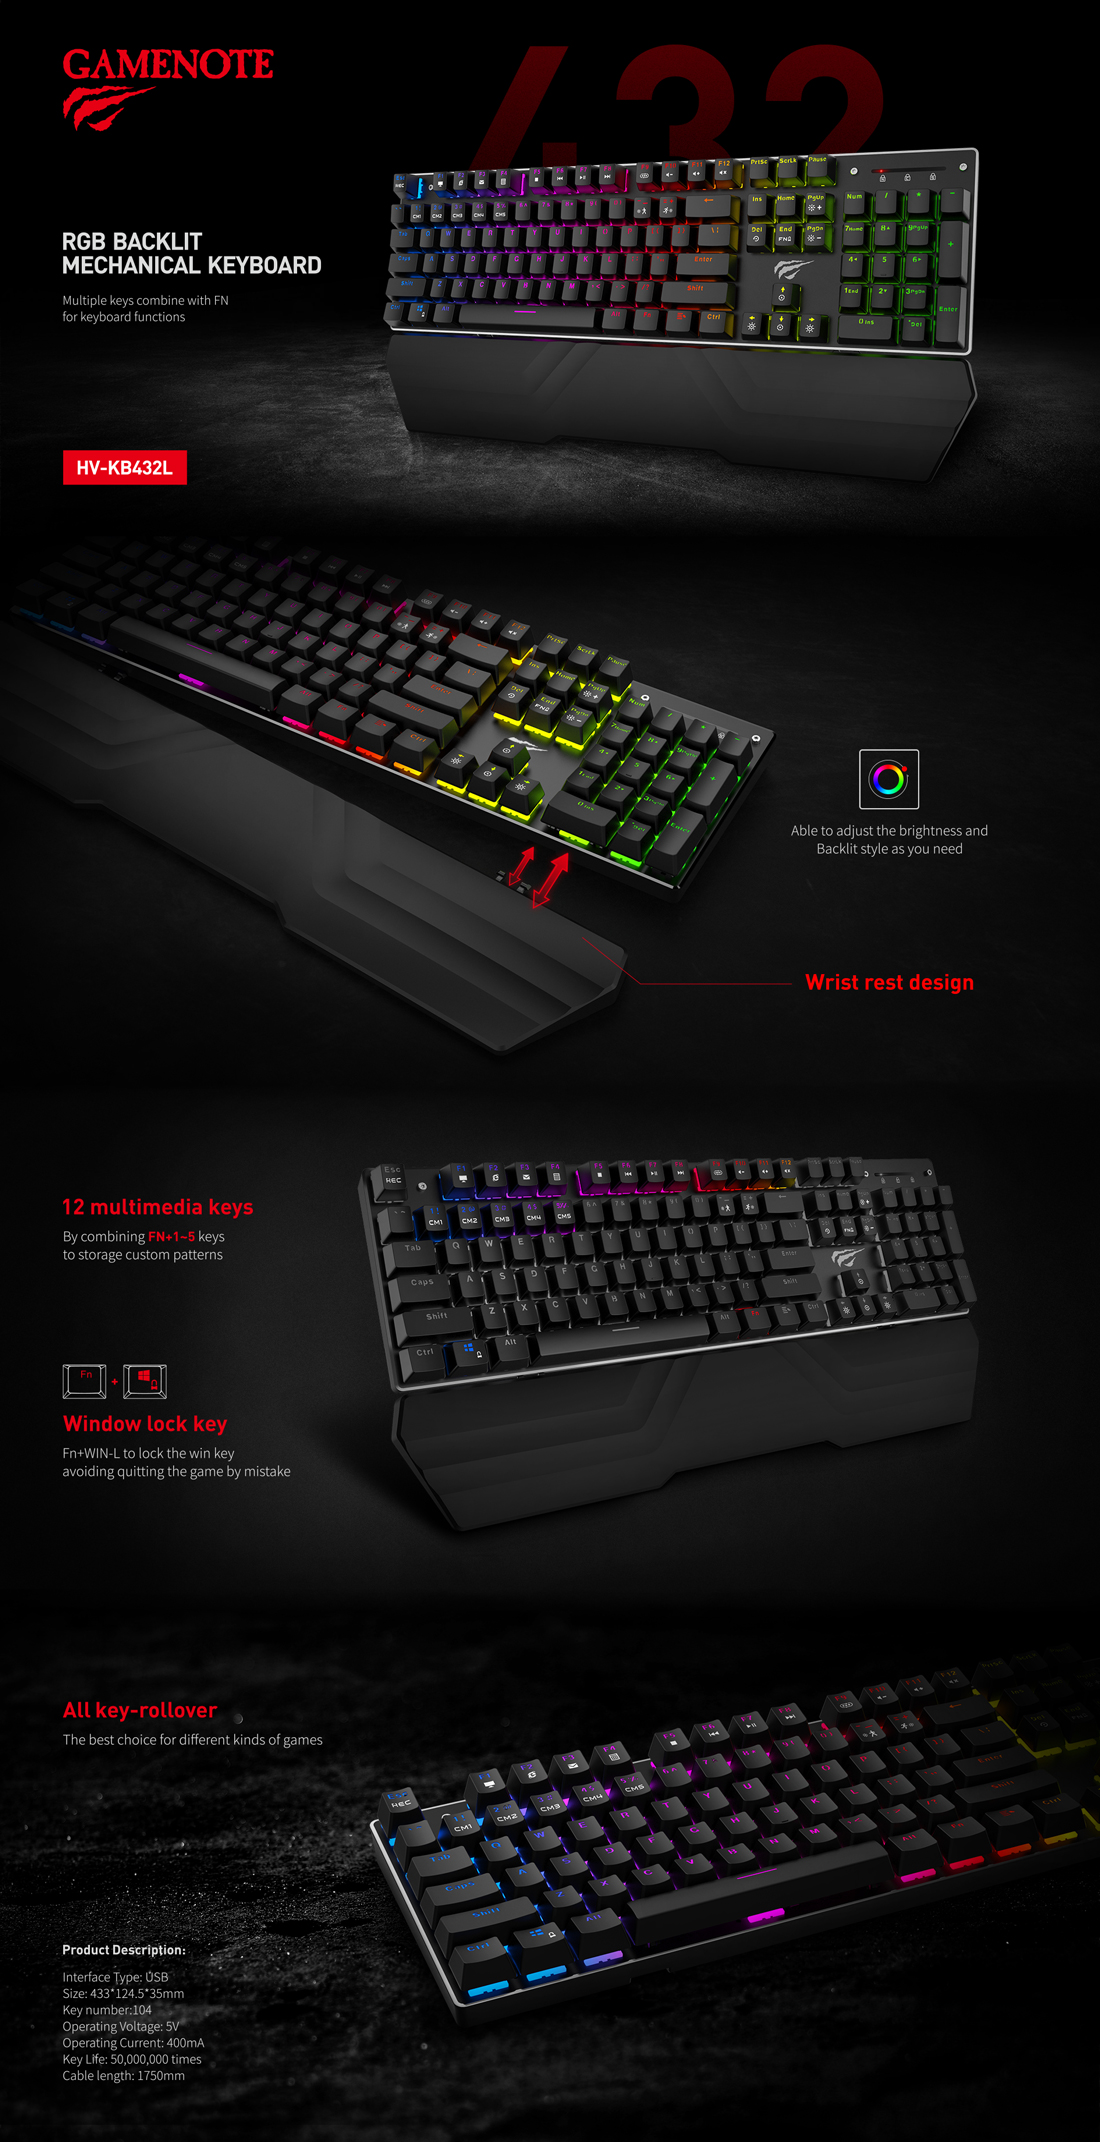 HAVIT GAMENOTE kb432l RGB Backlit Mechanical Gaming Keyboard With Wrist Pad